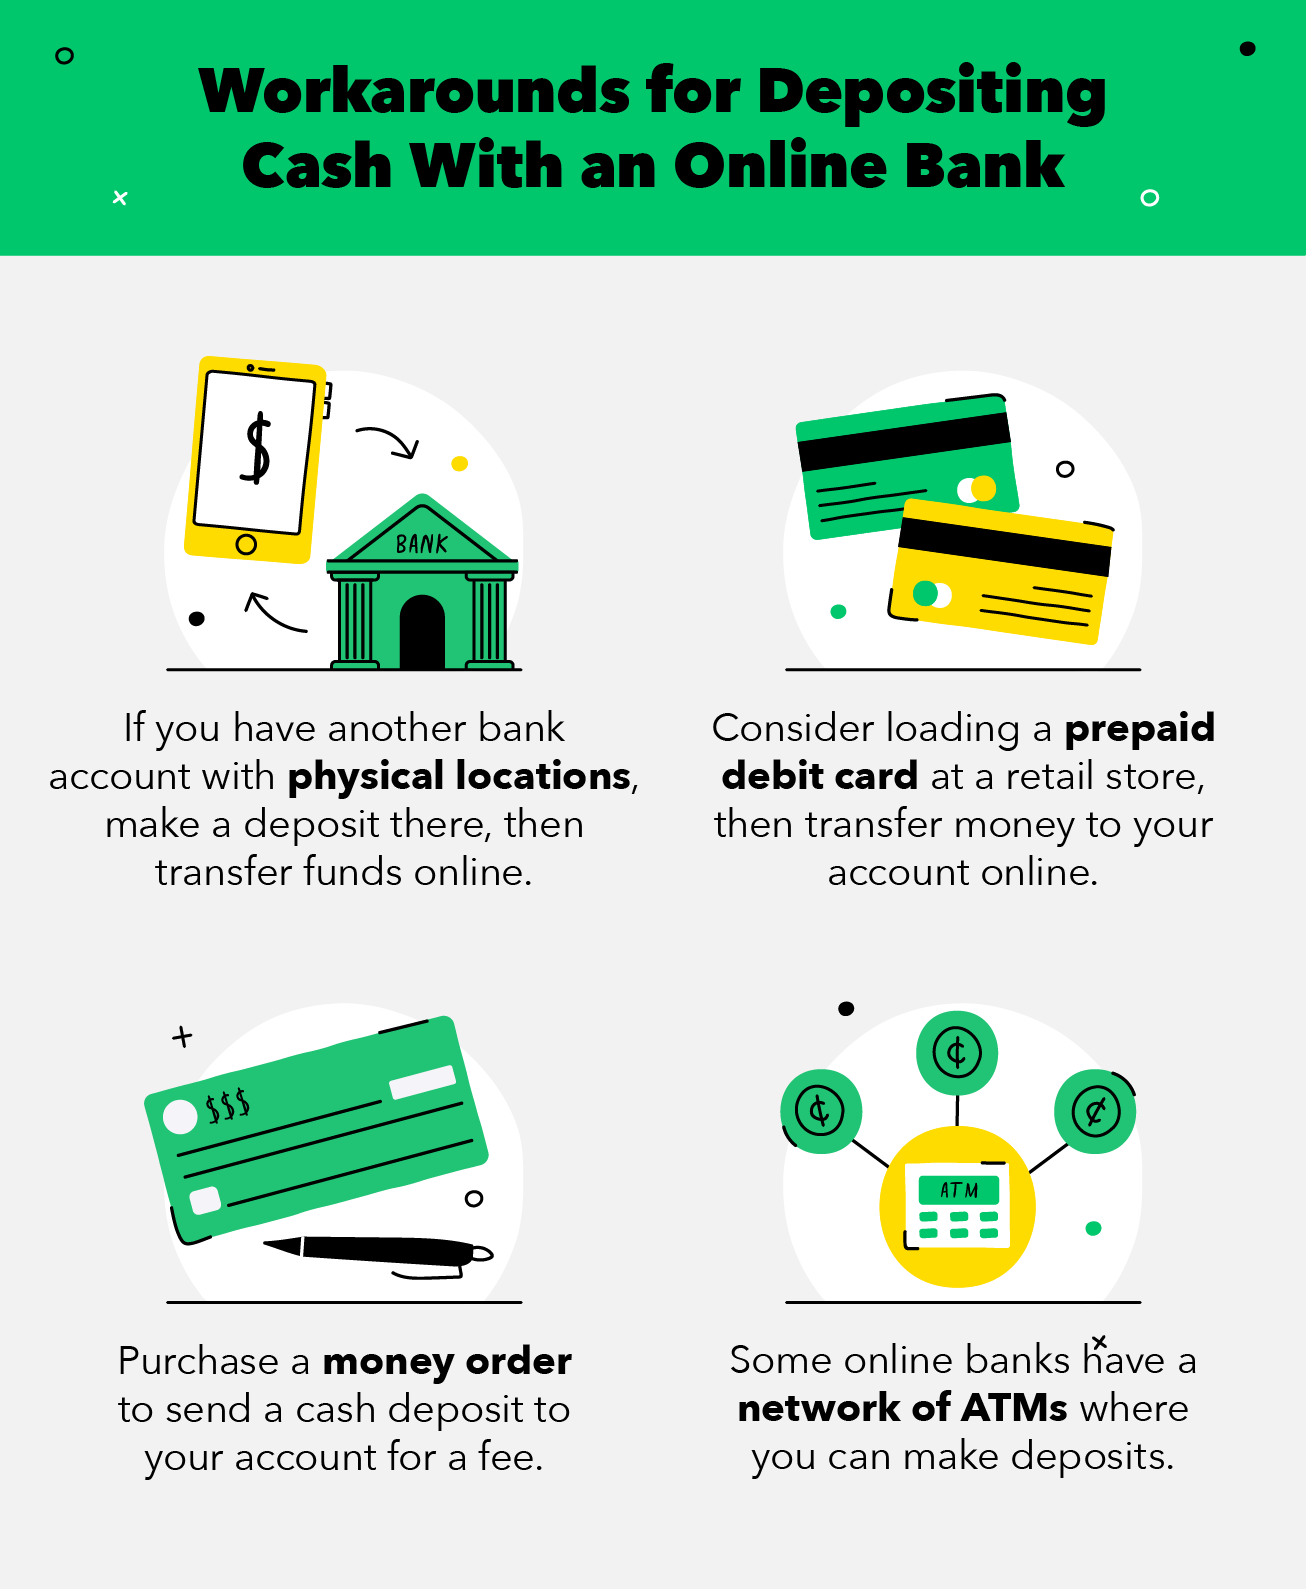 workarounds-for-depositing-cash-with-an-online-bank